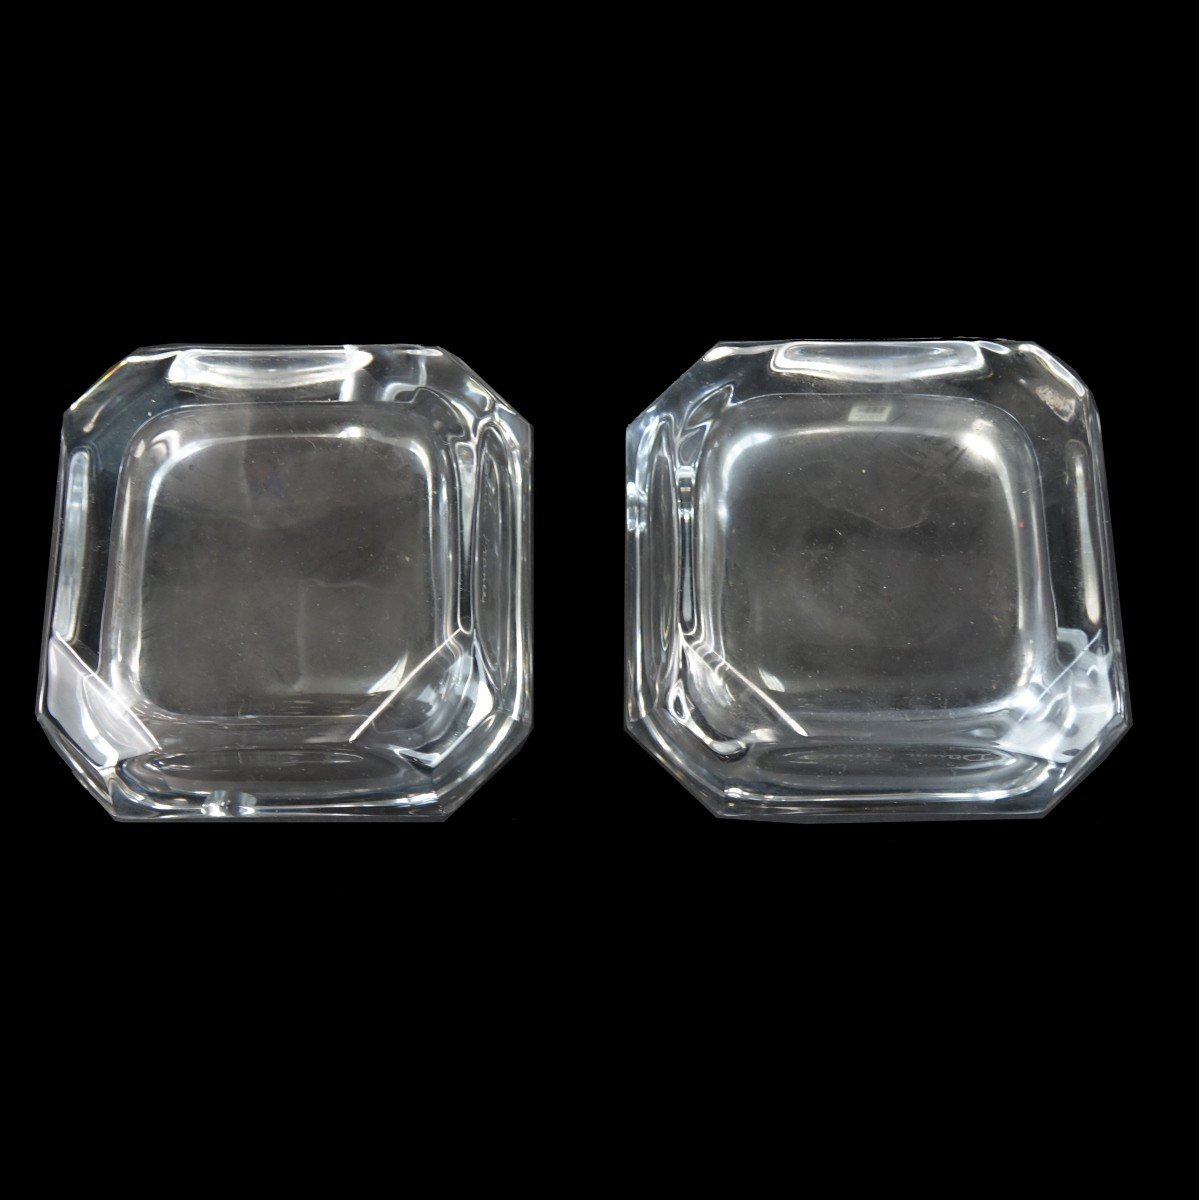 Pair of Daum Crystal Ashtrays in Boxes